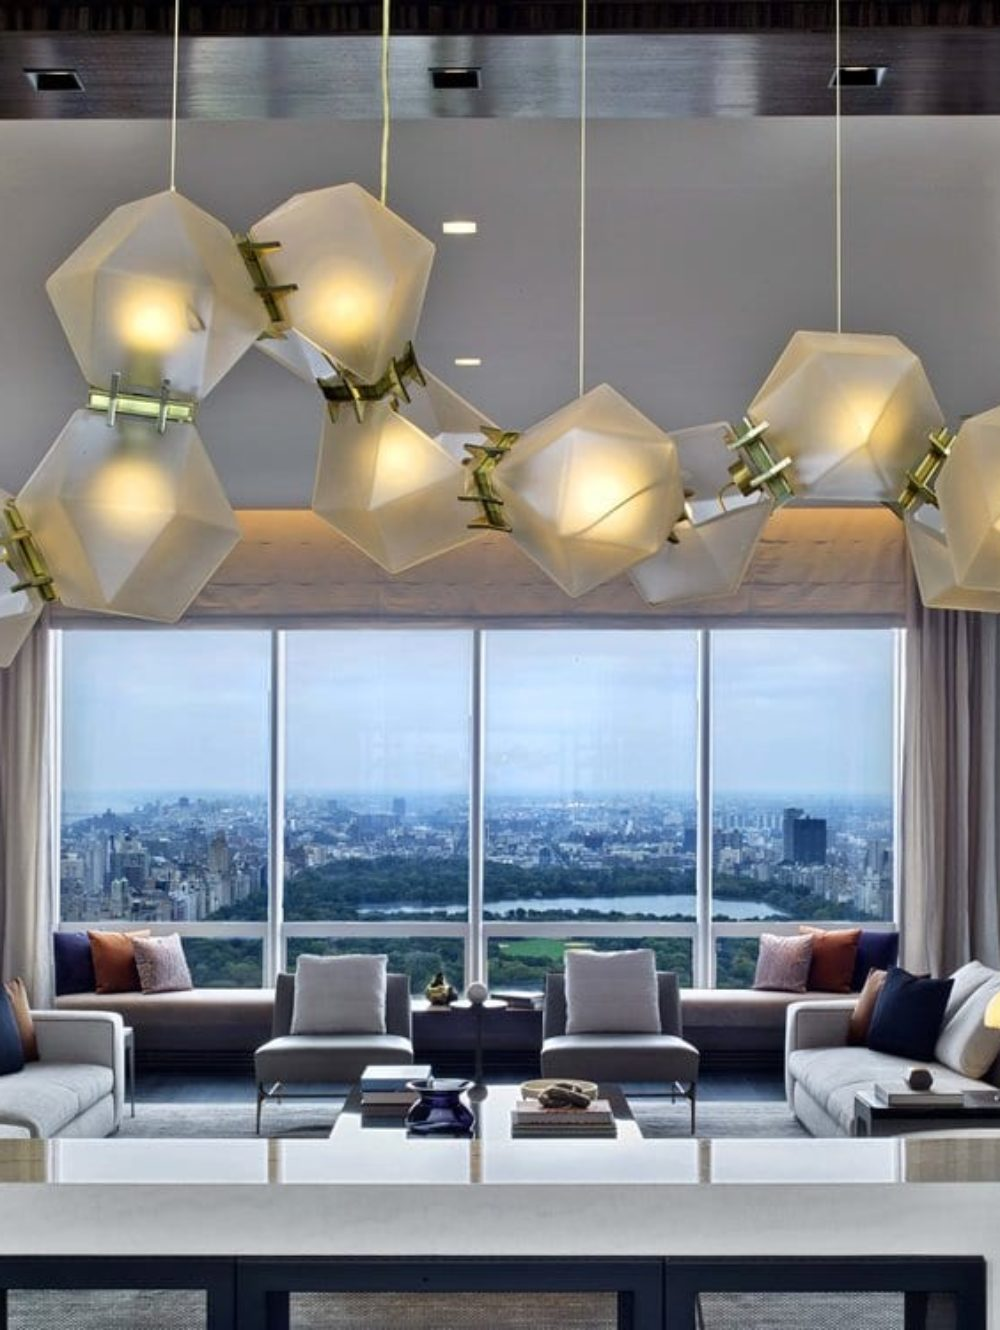 Living room with city views at One 57 condos in New York City. Hanging lights and bookshelves frame living room entrance.